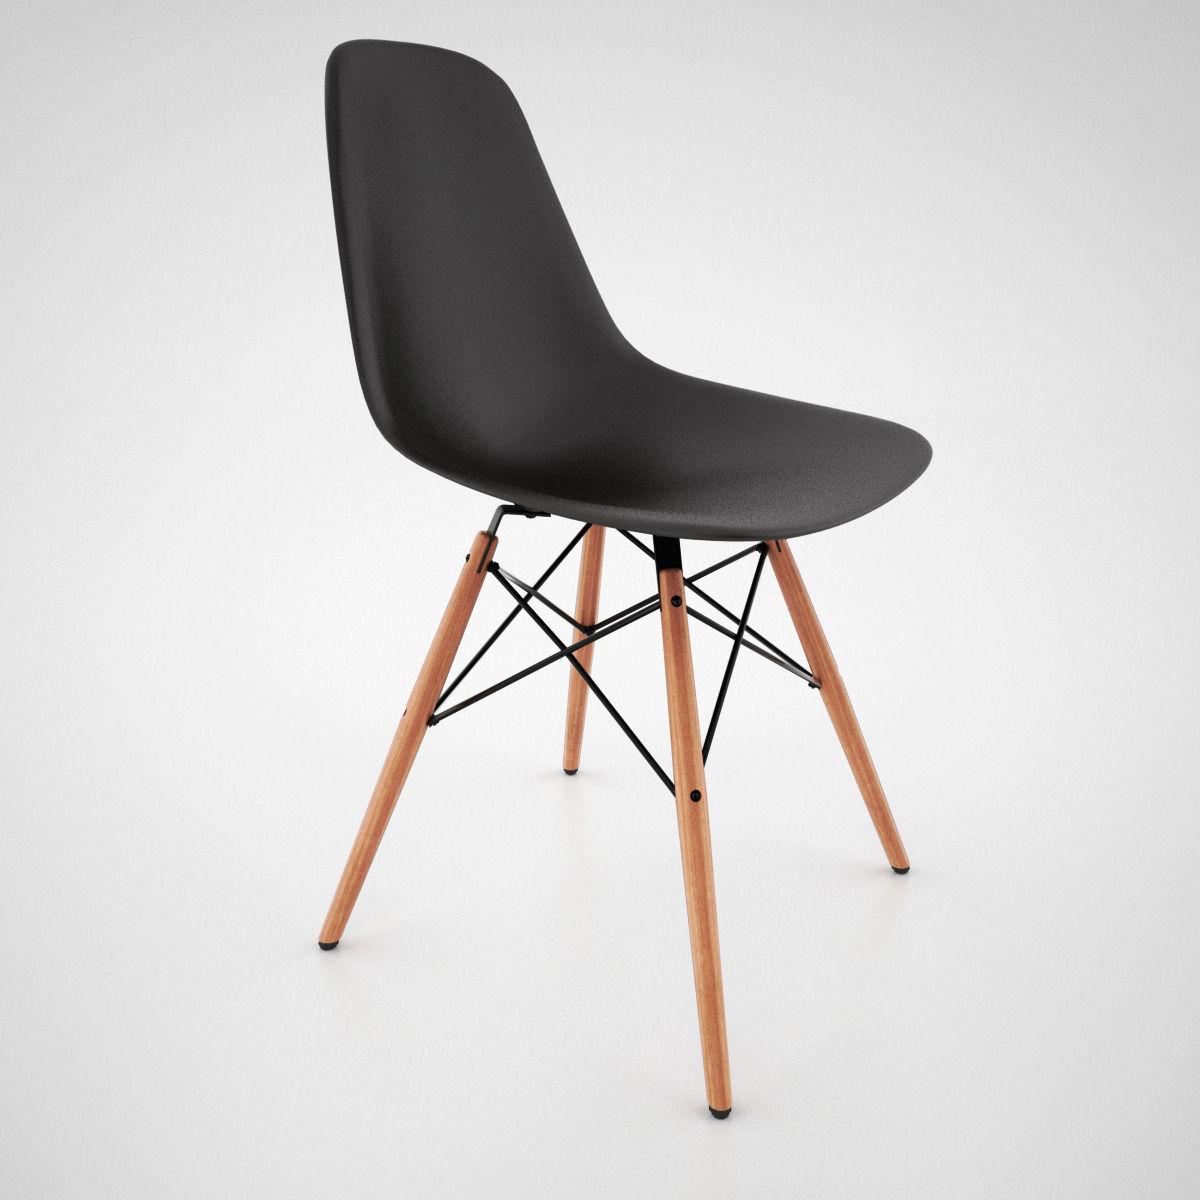 vitra dsw chair and eames table 3d model max obj fbx. Black Bedroom Furniture Sets. Home Design Ideas